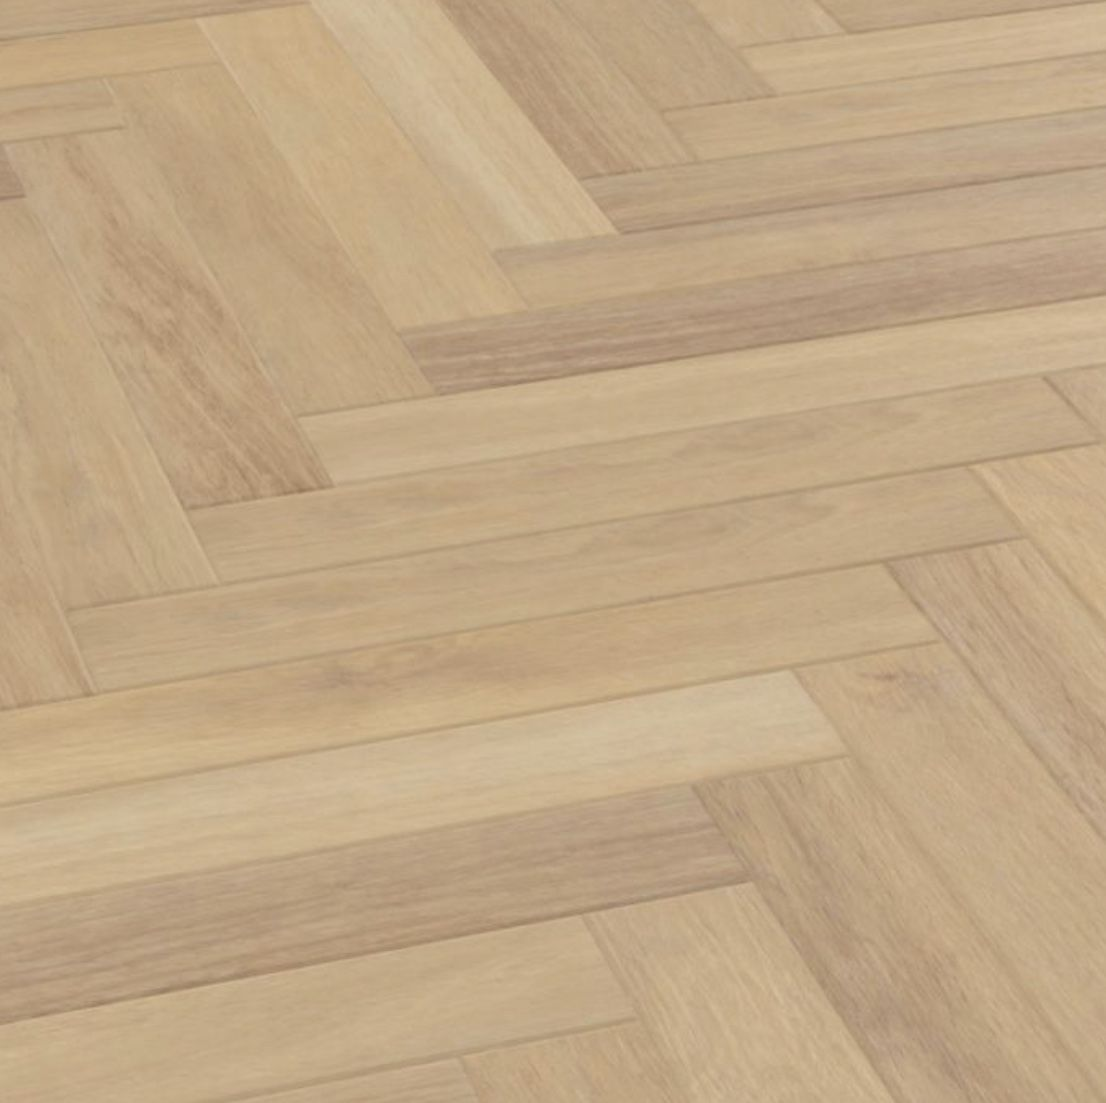 Karndean Art Select In Savannah Oak Beautiful Parquet Flooring In A Herringbone Pattern Massive Discounts On Big Flooring Karndean Flooring Vinyl Flooring